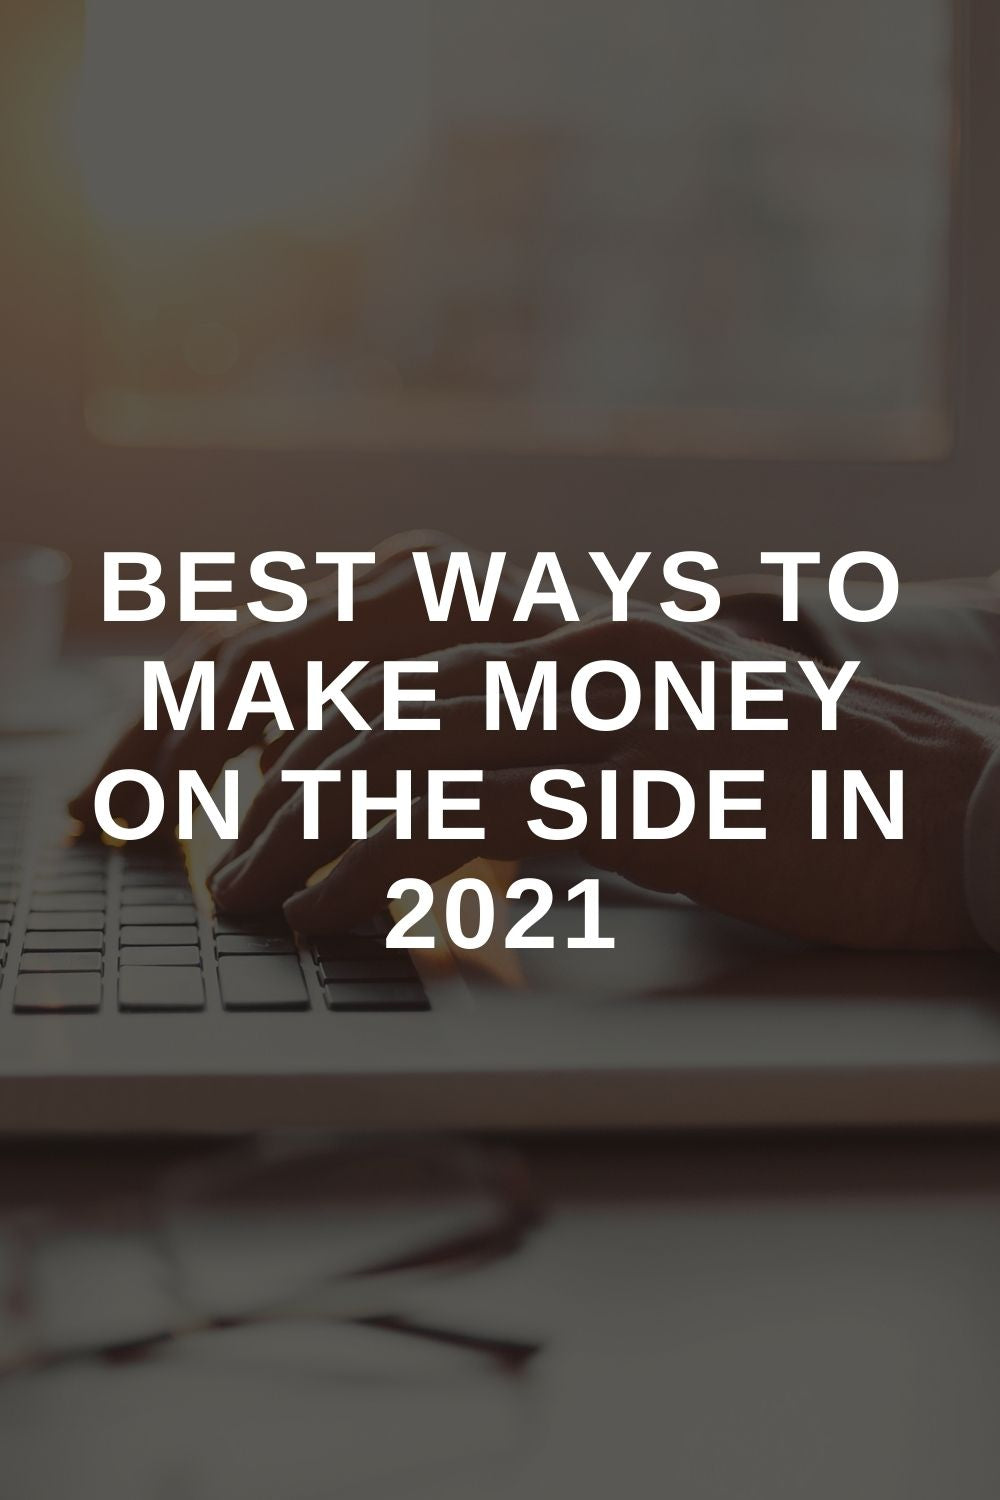 Best Ways To Make Money on the Side in 2021